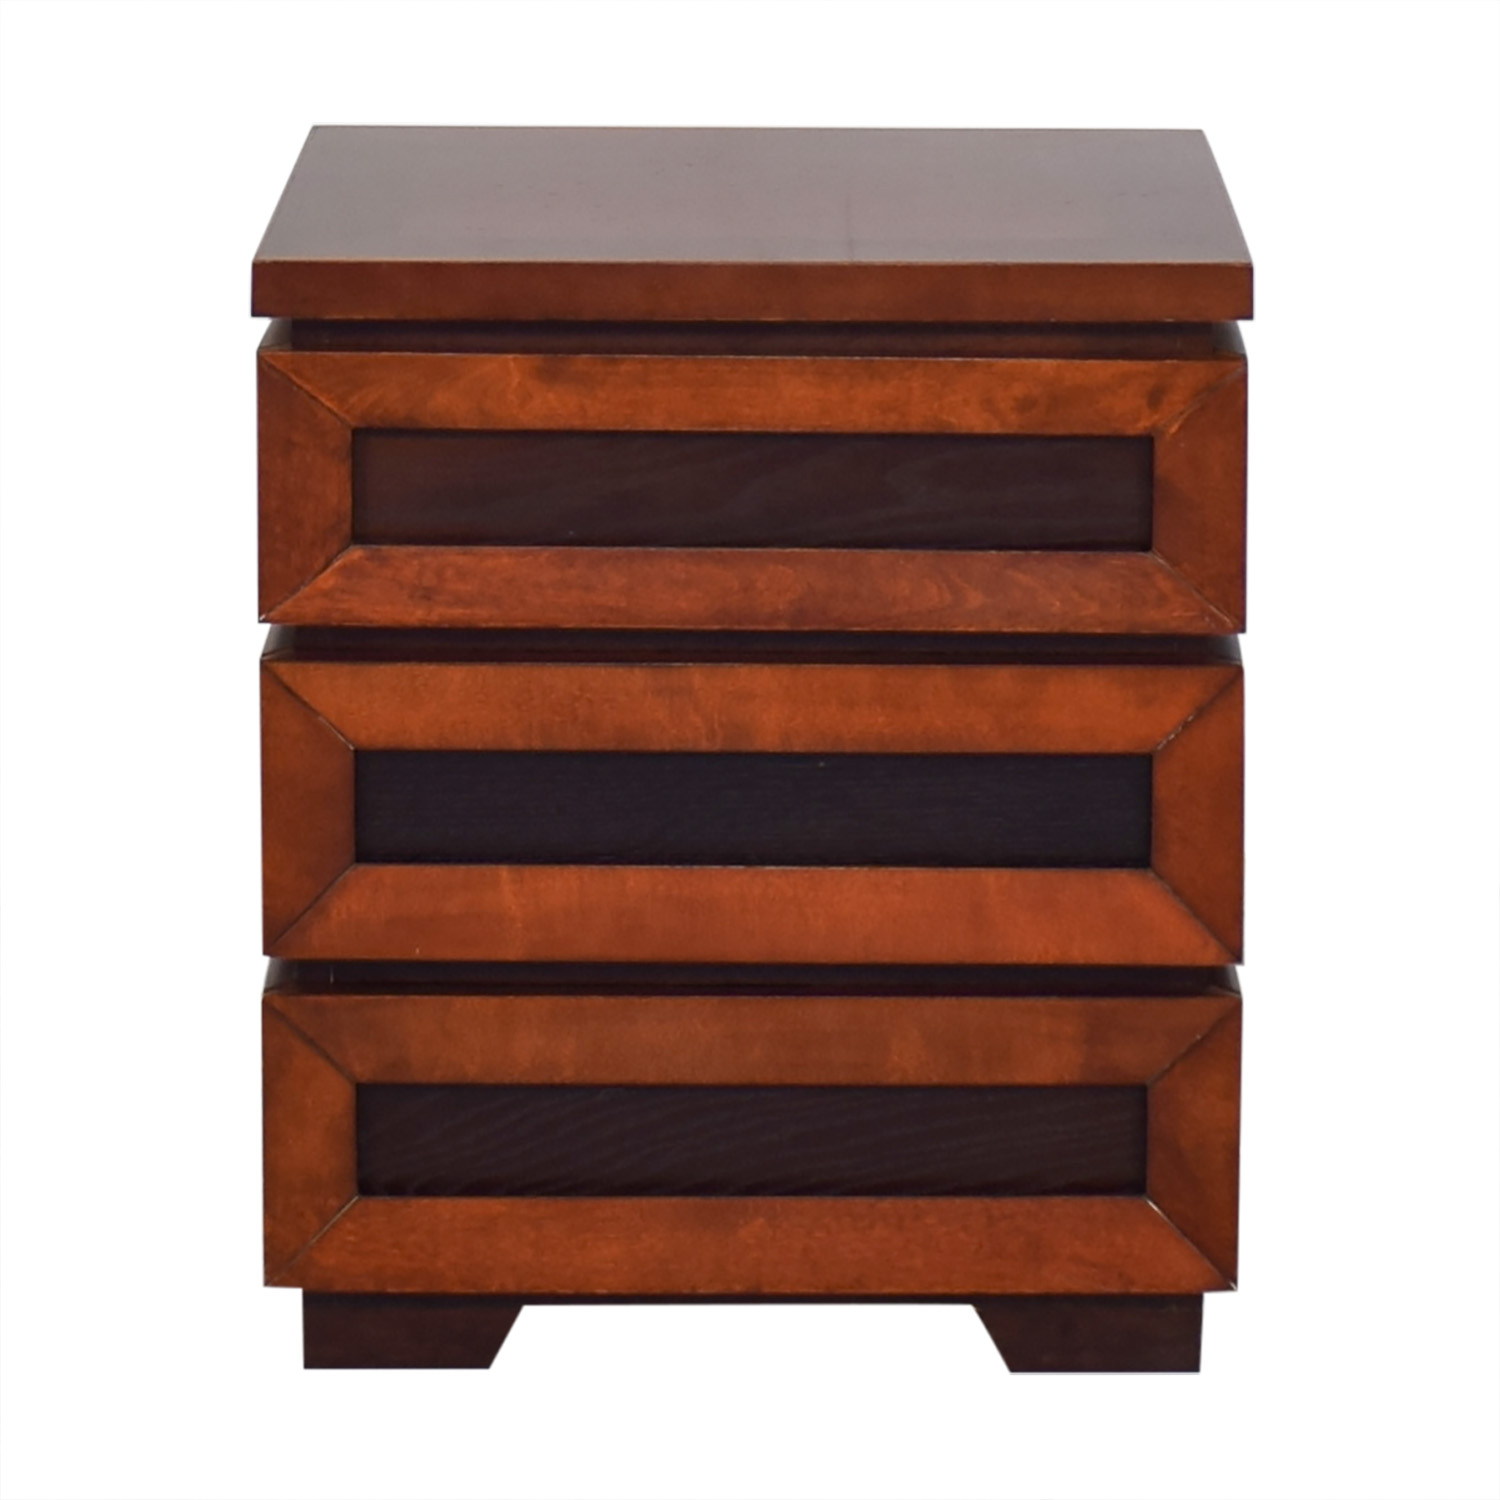 Crate & Barrel Crate & Barrel Side Table with Drawers nj